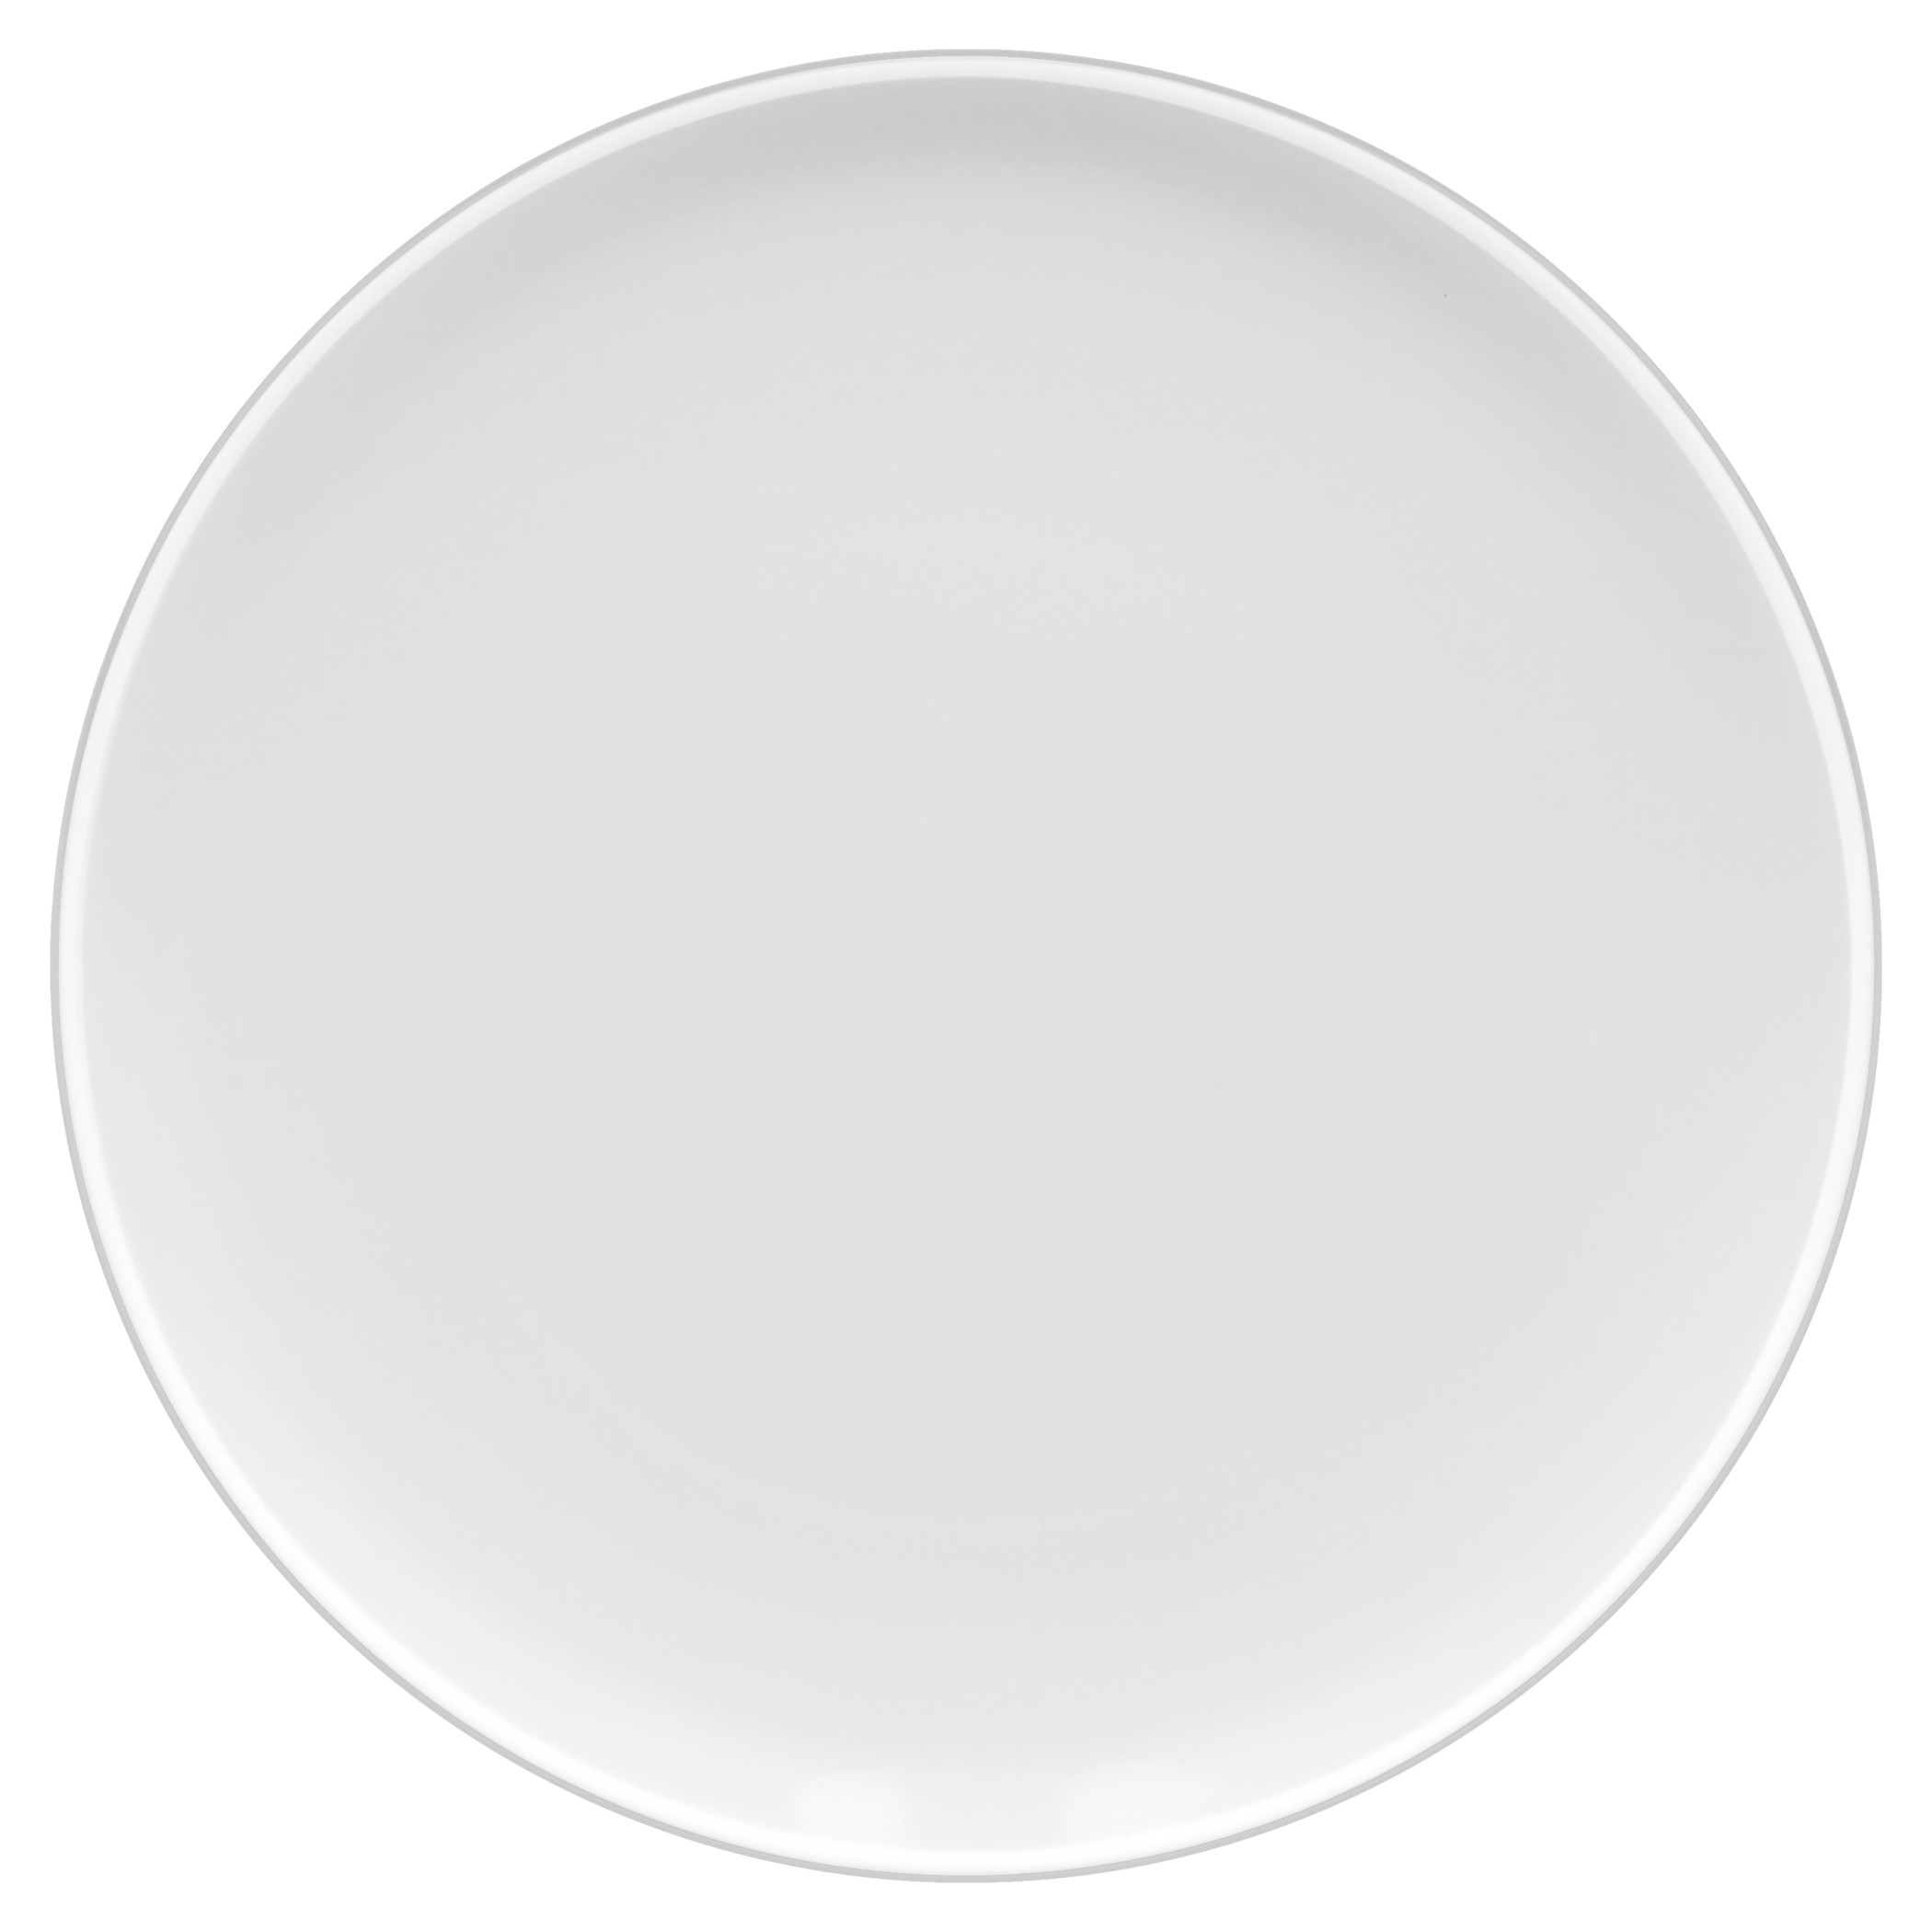 Noritake ColorTrio Porcelain Coupe Dinner Plate, Slate